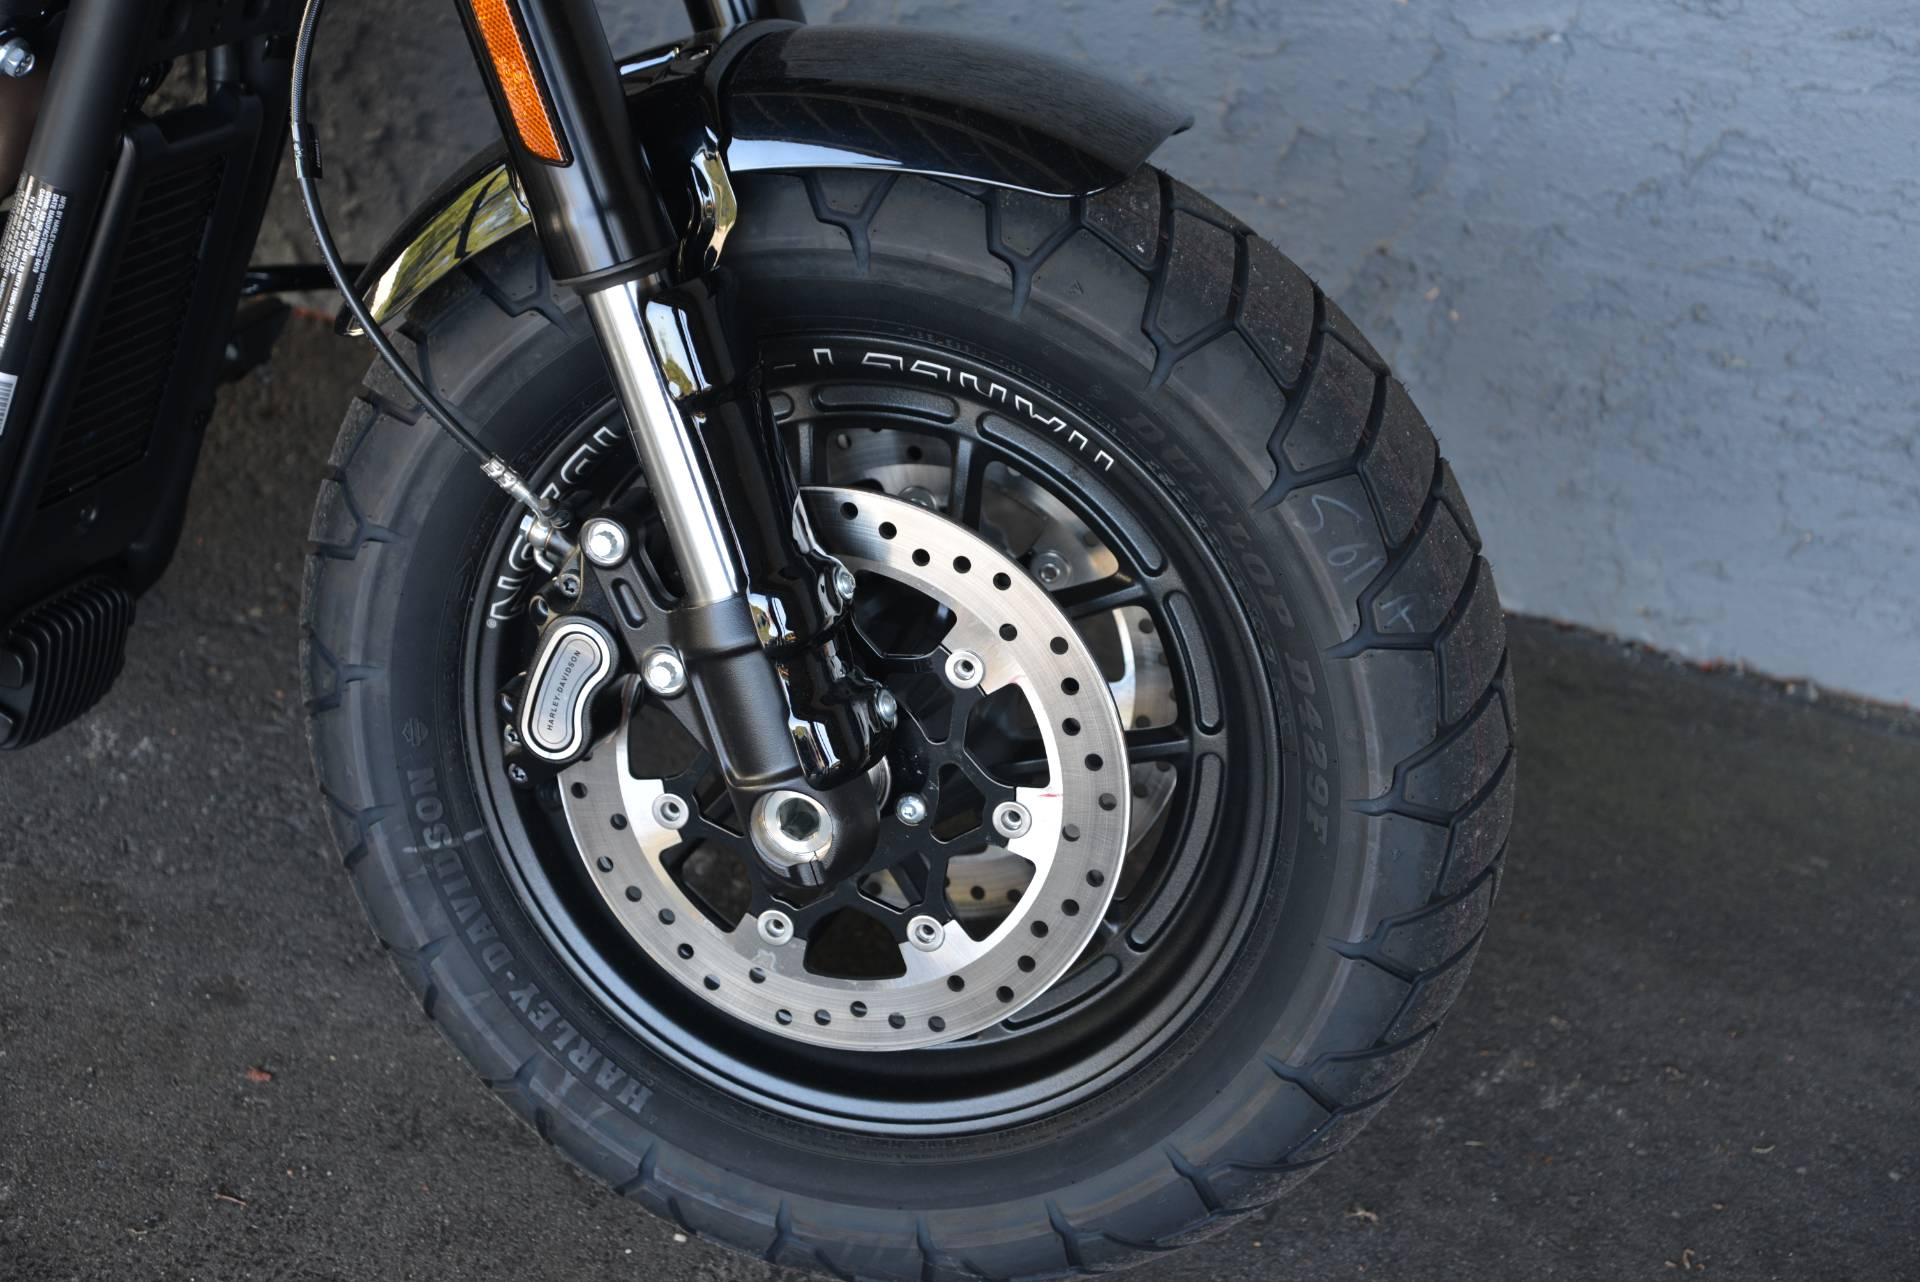 2019 Harley-Davidson FATBOB S in Lakewood, New Jersey - Photo 6